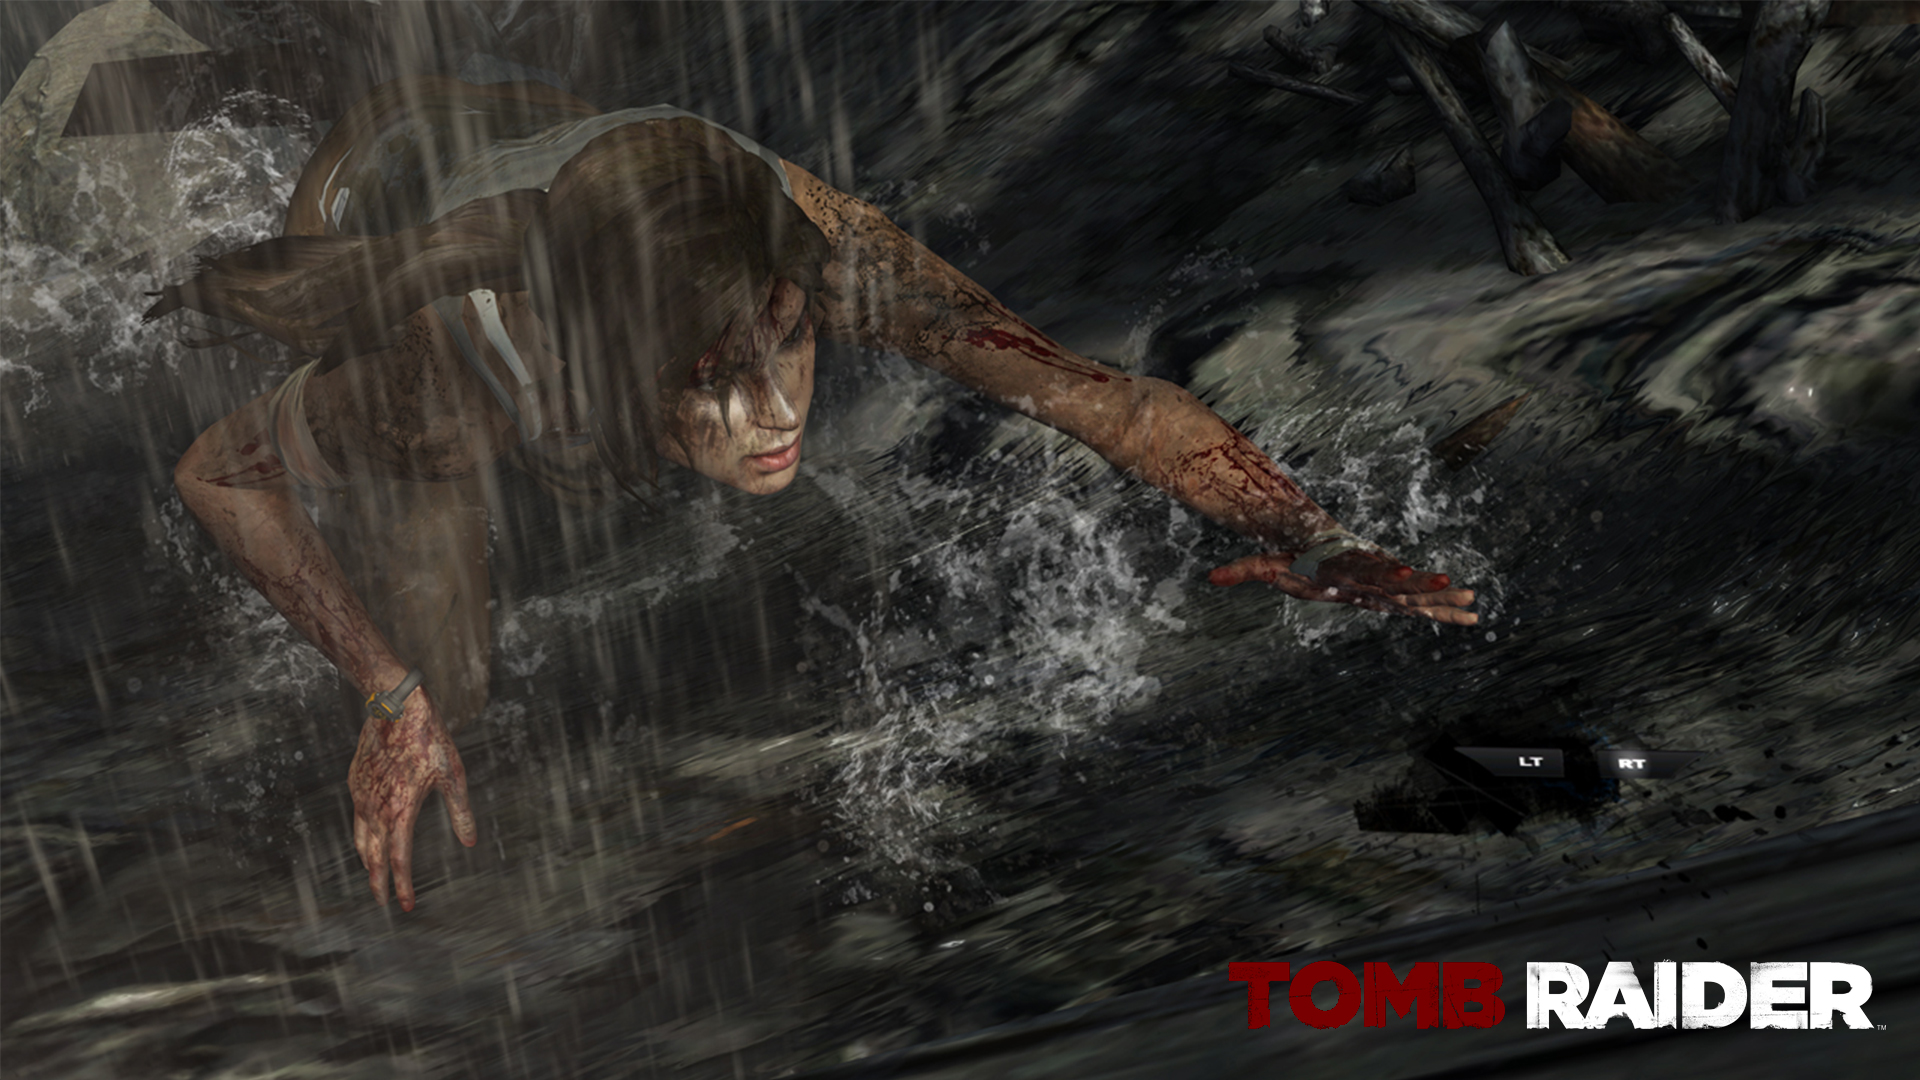 Experience Lara Croft's riveting origin story, Tomb Raider, now available on NVIDIA SHIELD via GeForce NOW